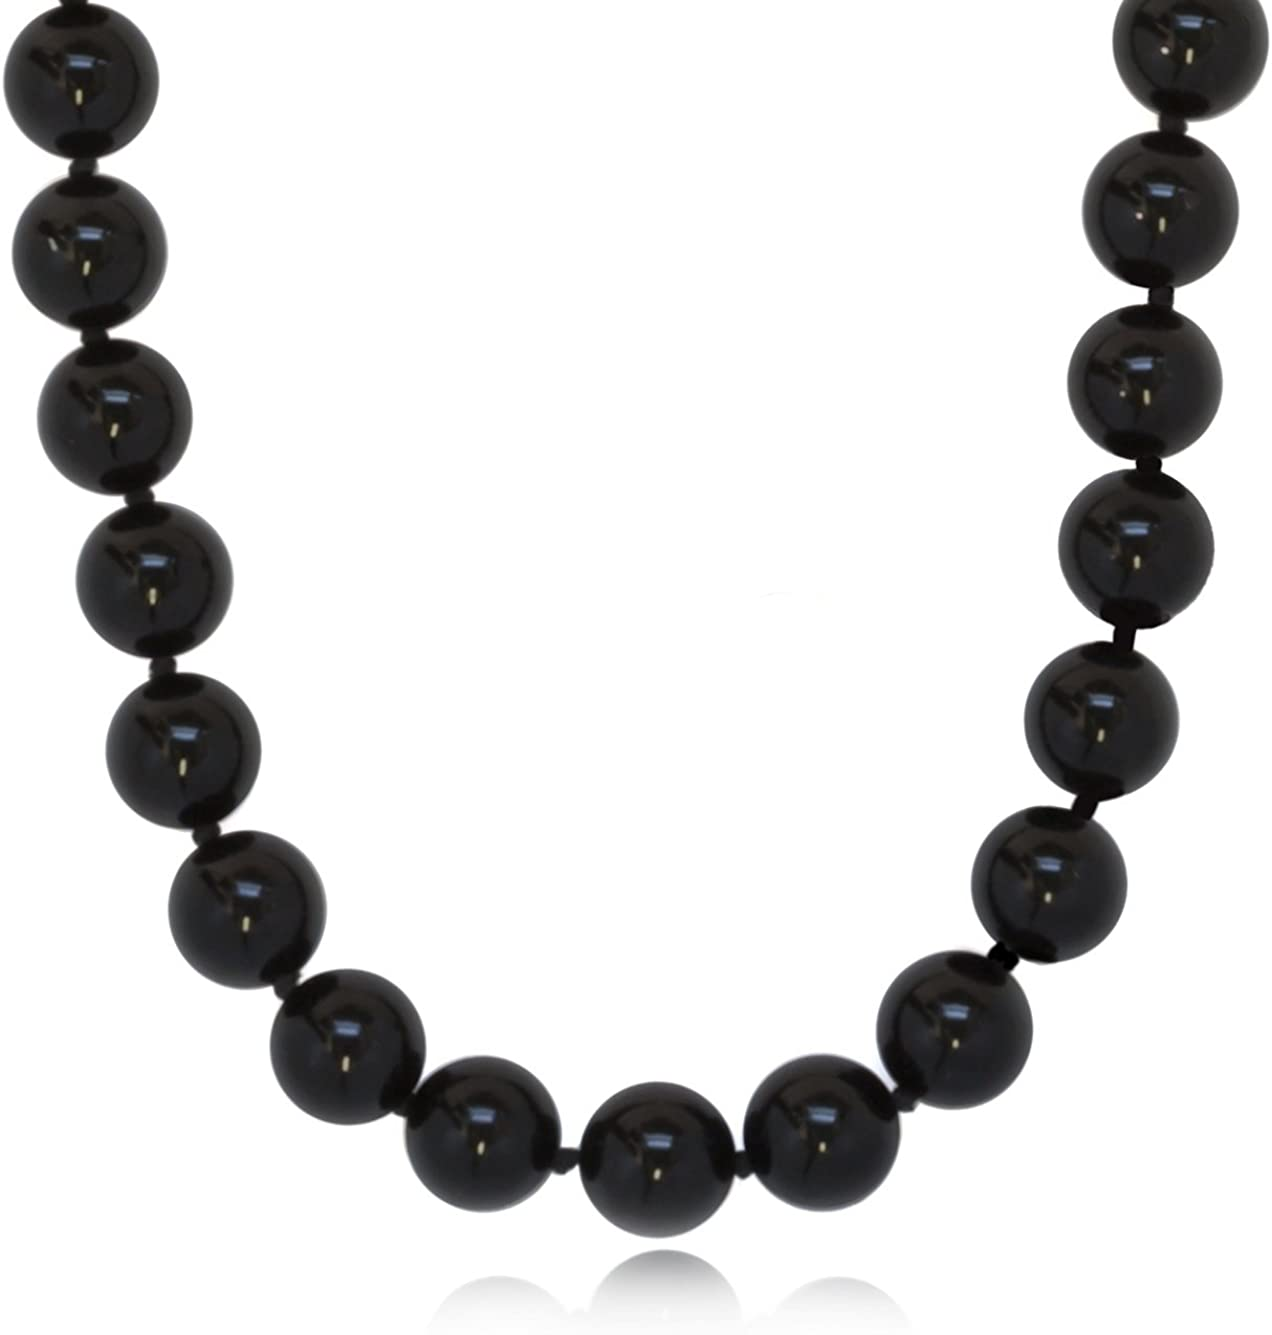 Clasp is a Silver Hook 19.5 inch Silver Wire Wrapped Onyx Bead Necklace with a 3 inch Silver and Onyx Pendent